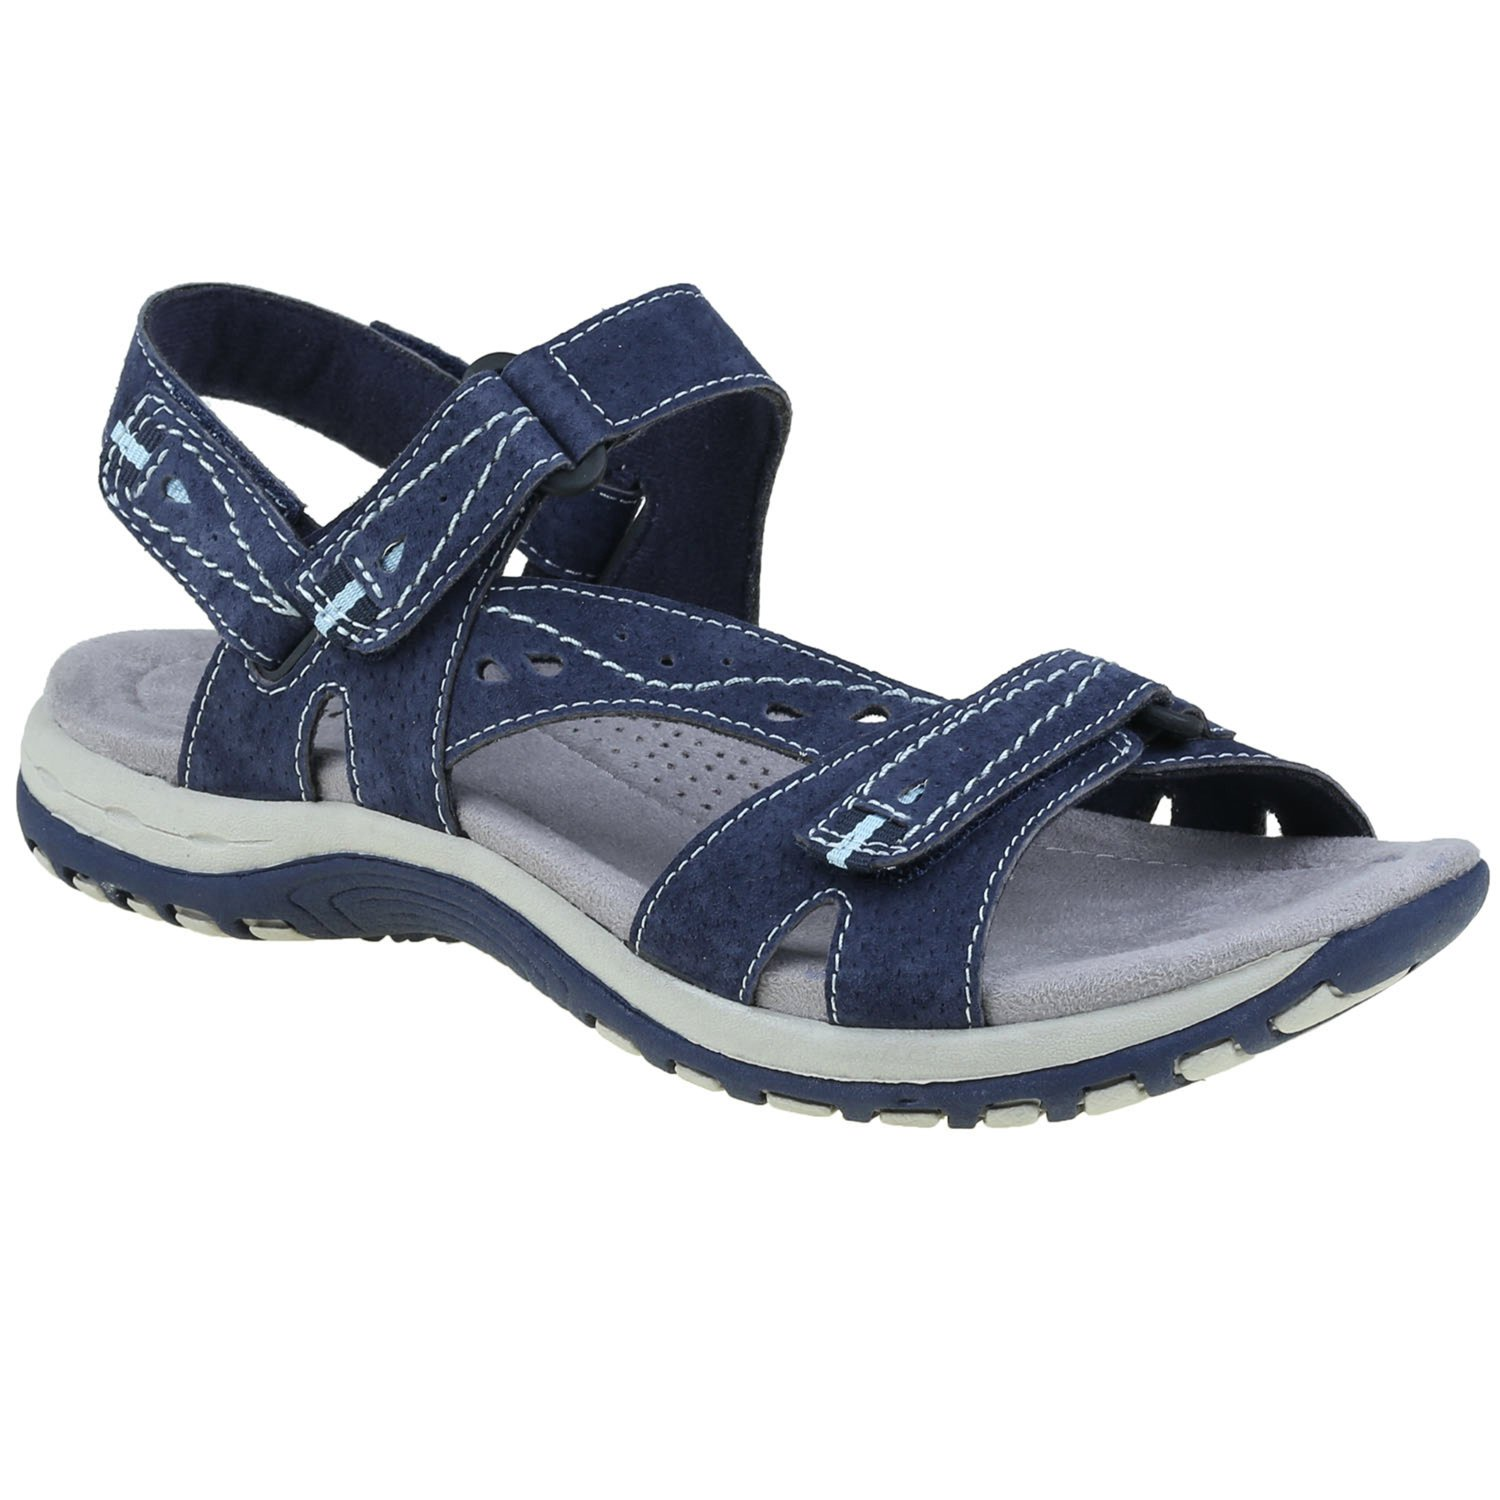 Earth Origins Women's Sophie Sandals B018QTPI62 10 B(M) US|Navy Blue